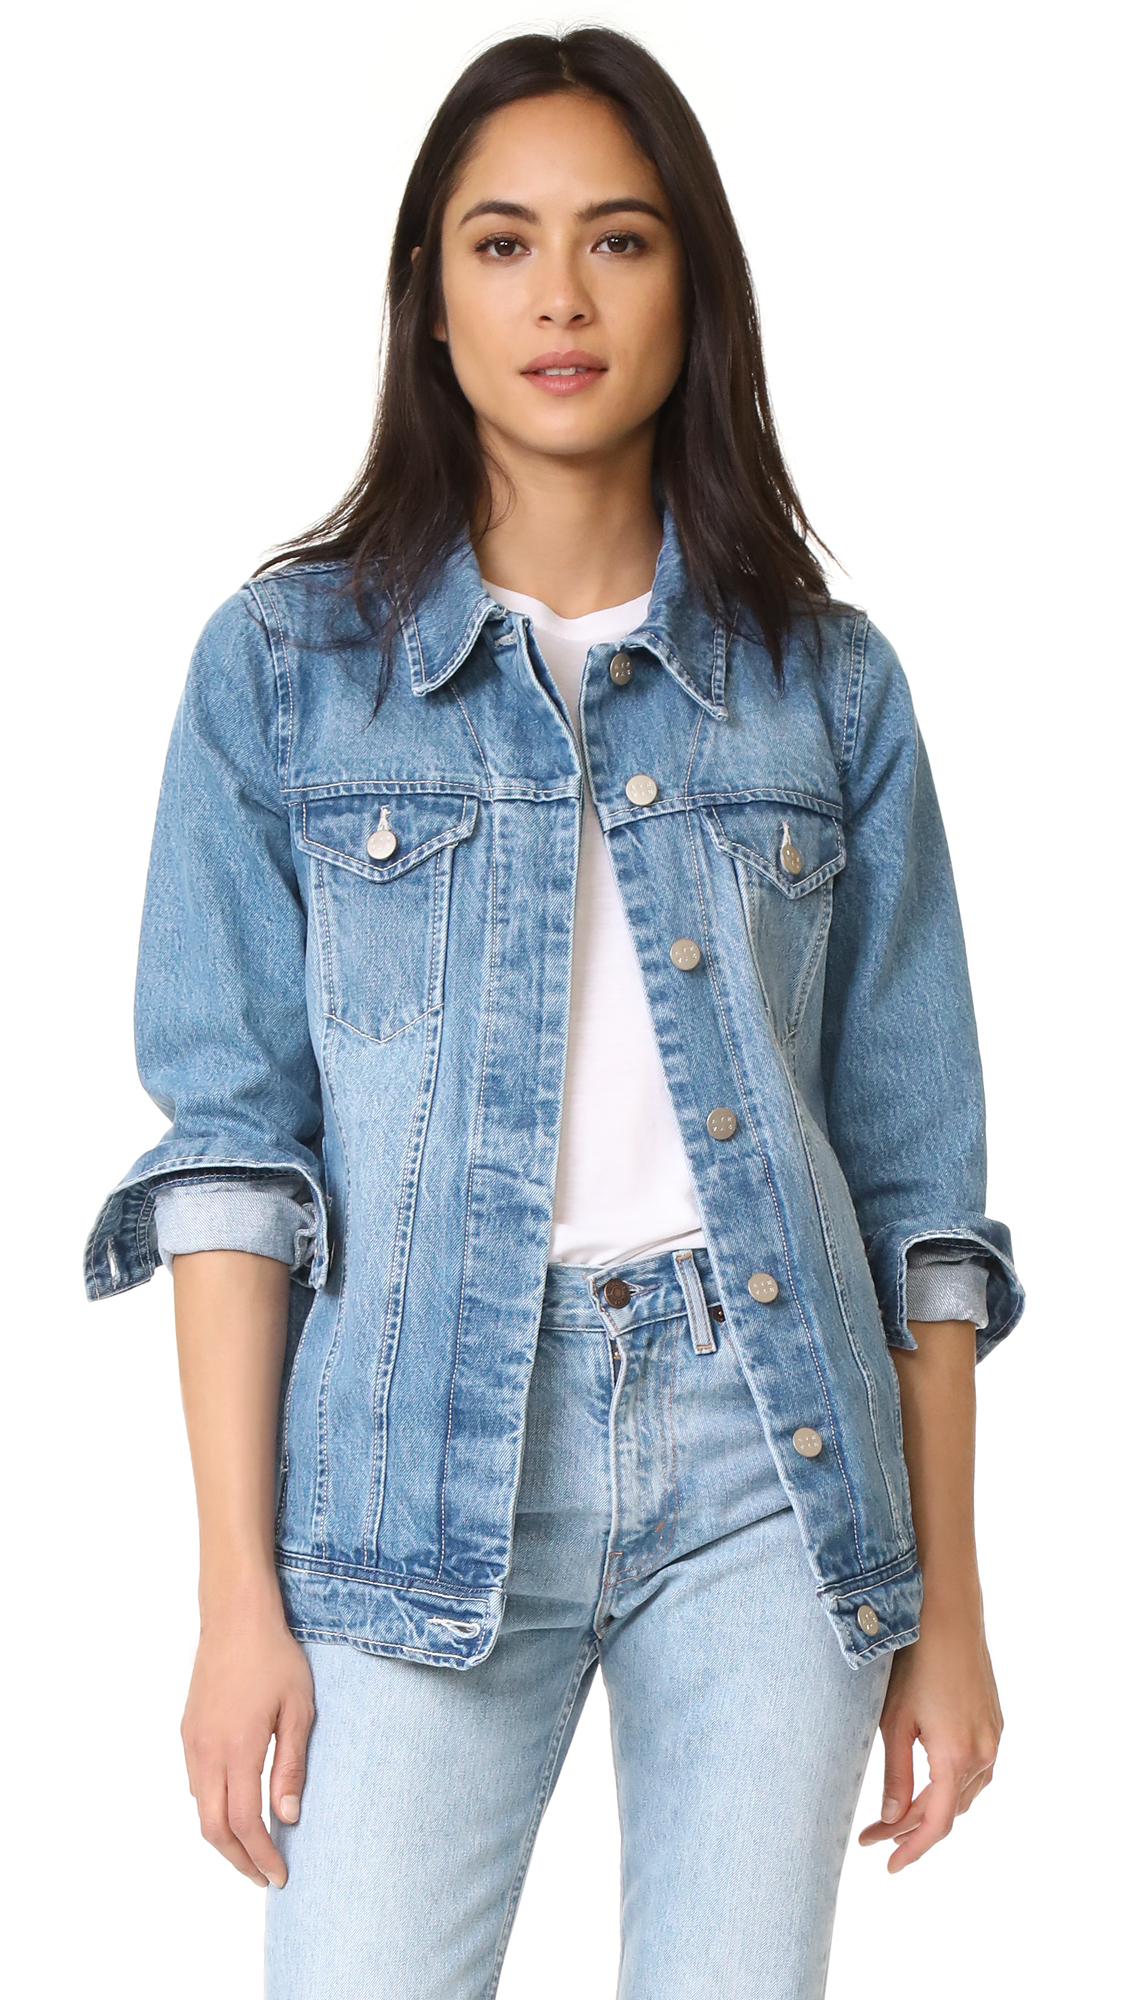 AYR The Double Star Denim Jacket